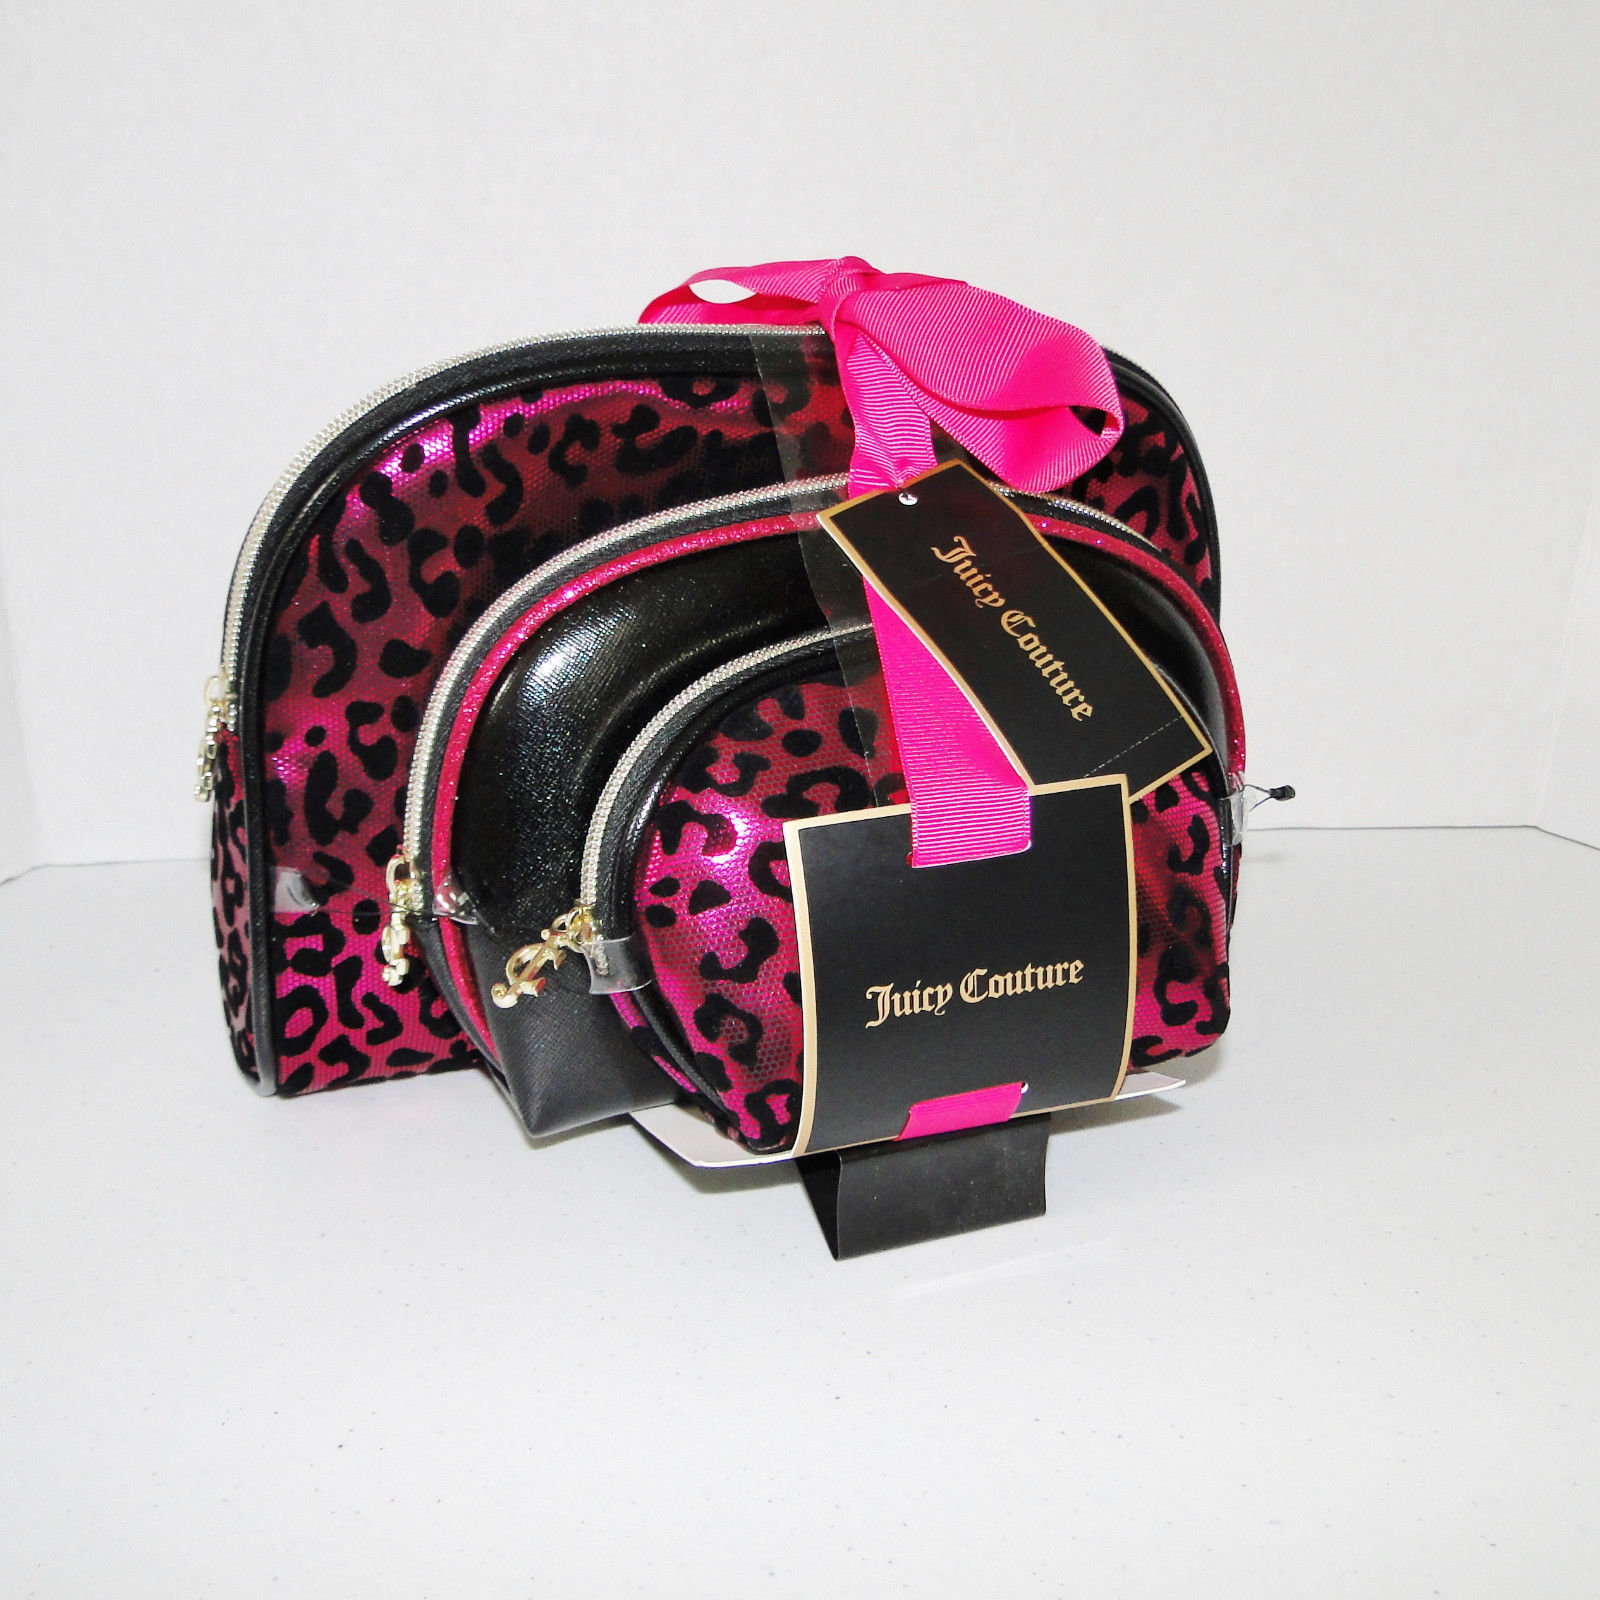 Juicy Couture Leopard Pink & Black Cosmetic Travel Case Set